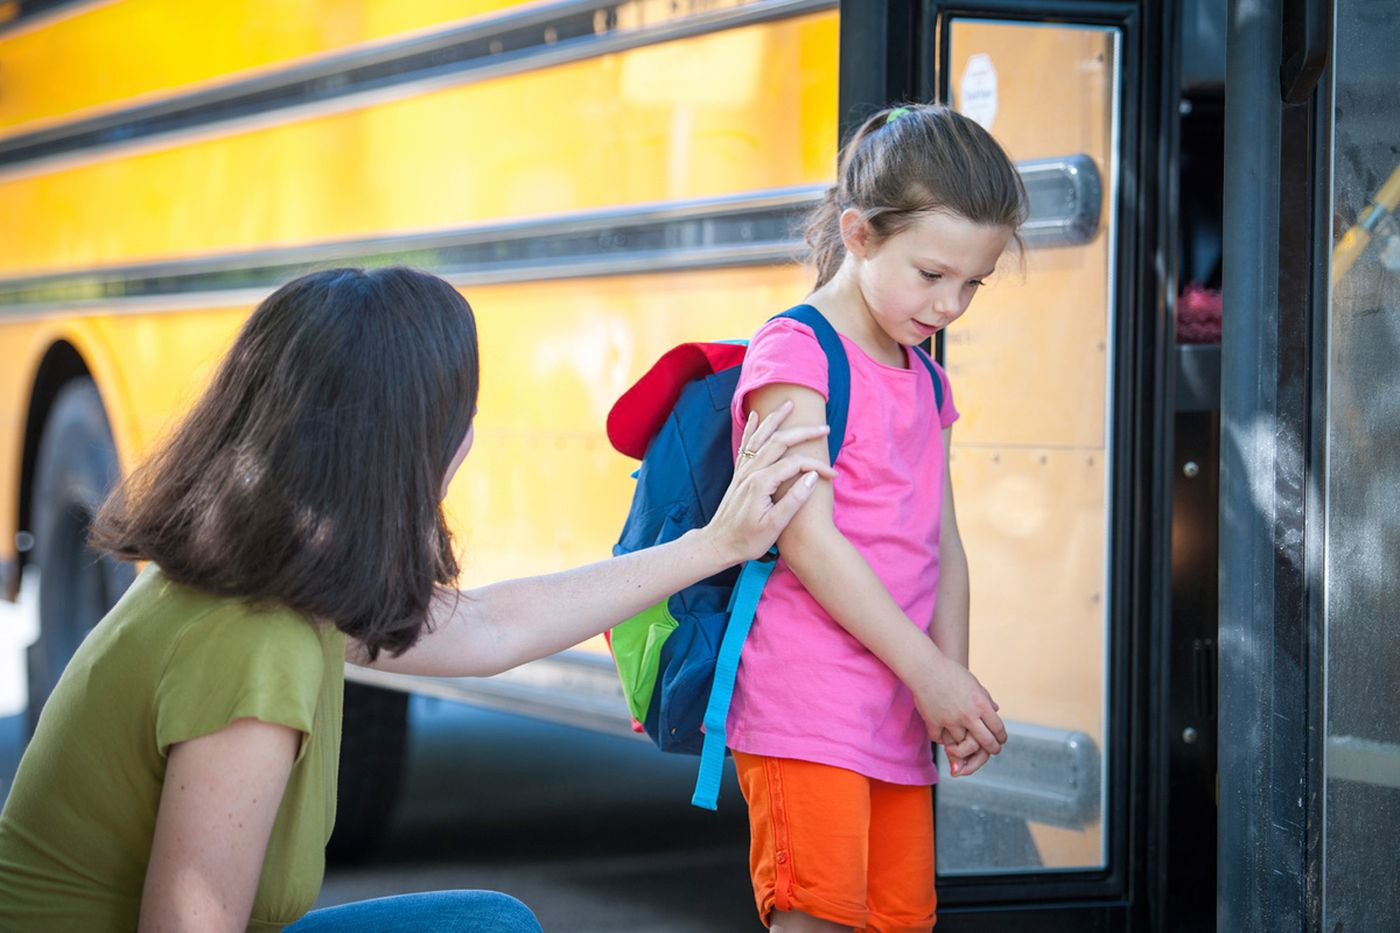 Returning to school: What if your child didn't have a good summer?